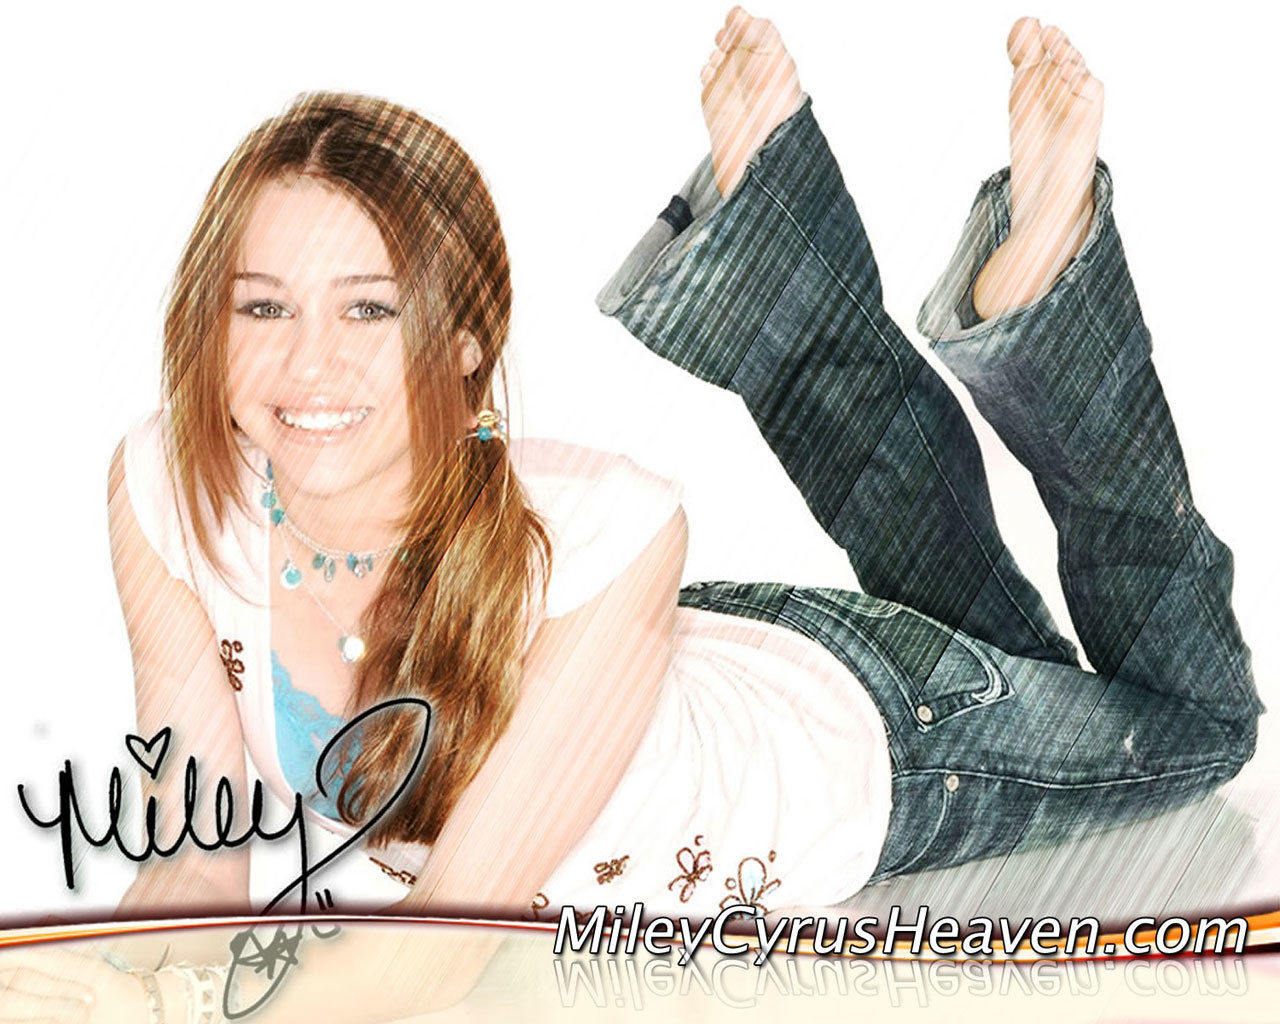 miley cyrus Celebrity singers HD Wallpaper